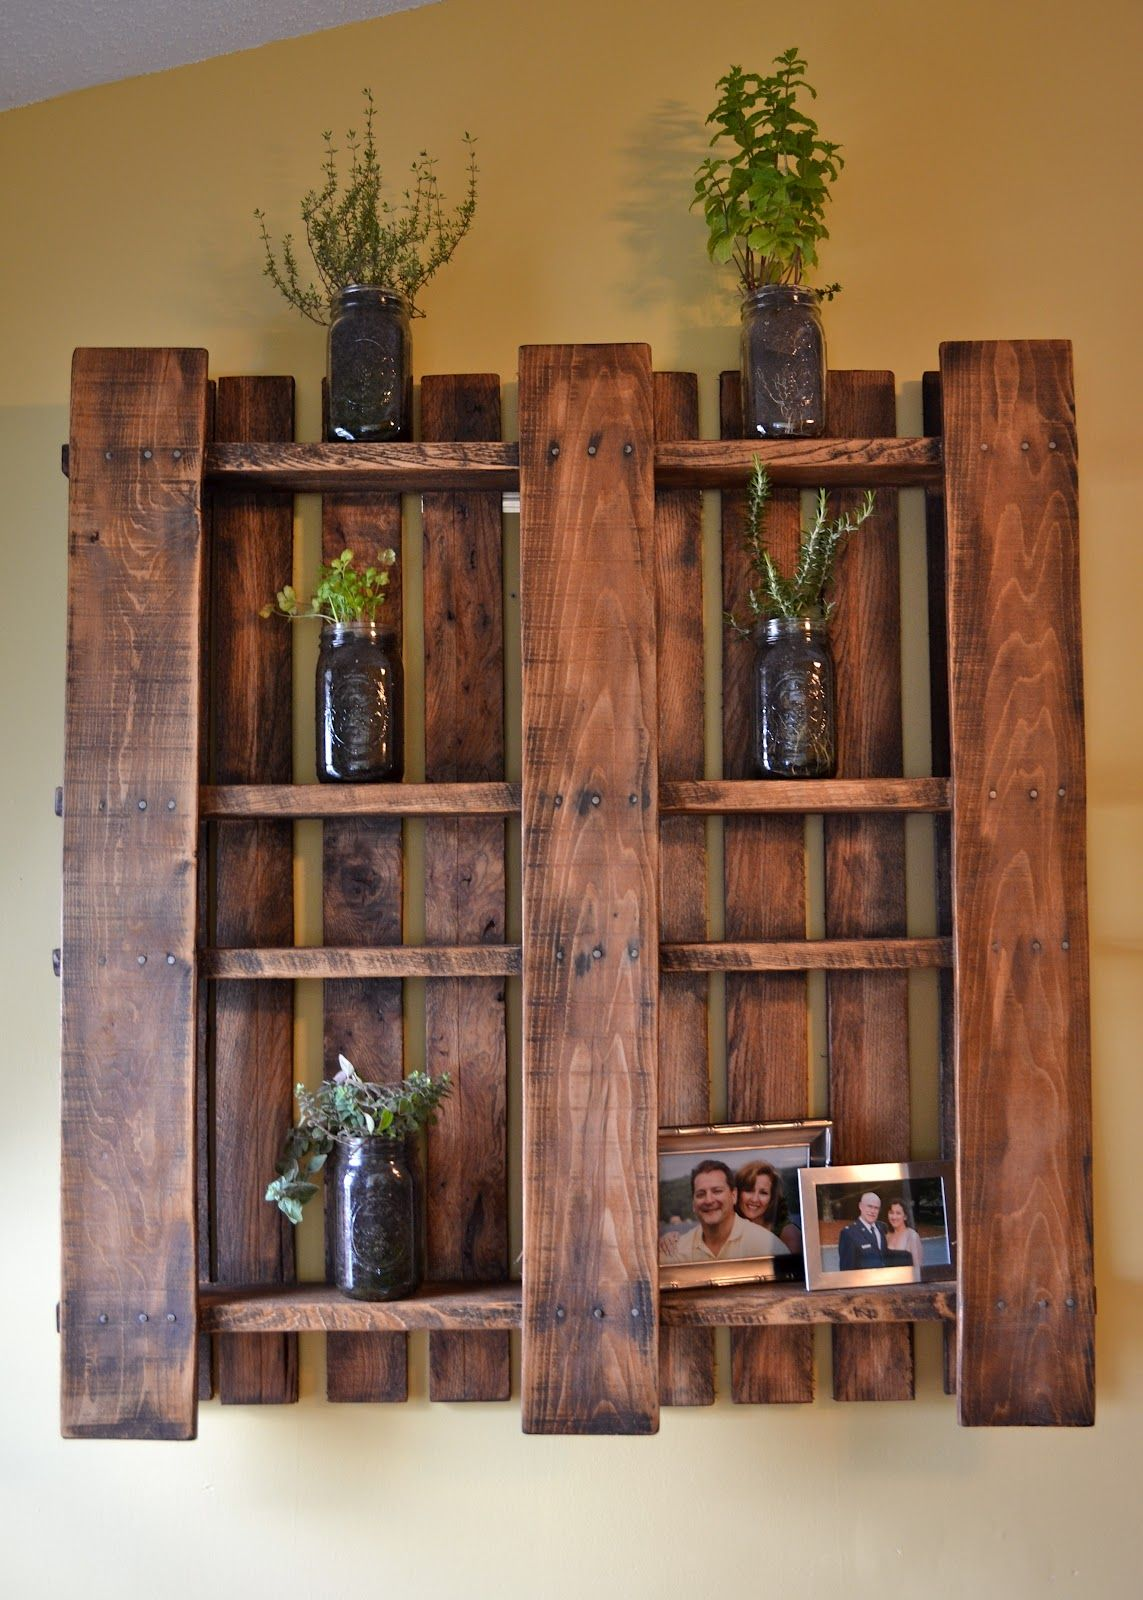 Design Wood Pallet Shelves creative and engaging designs featuring pallet shelves